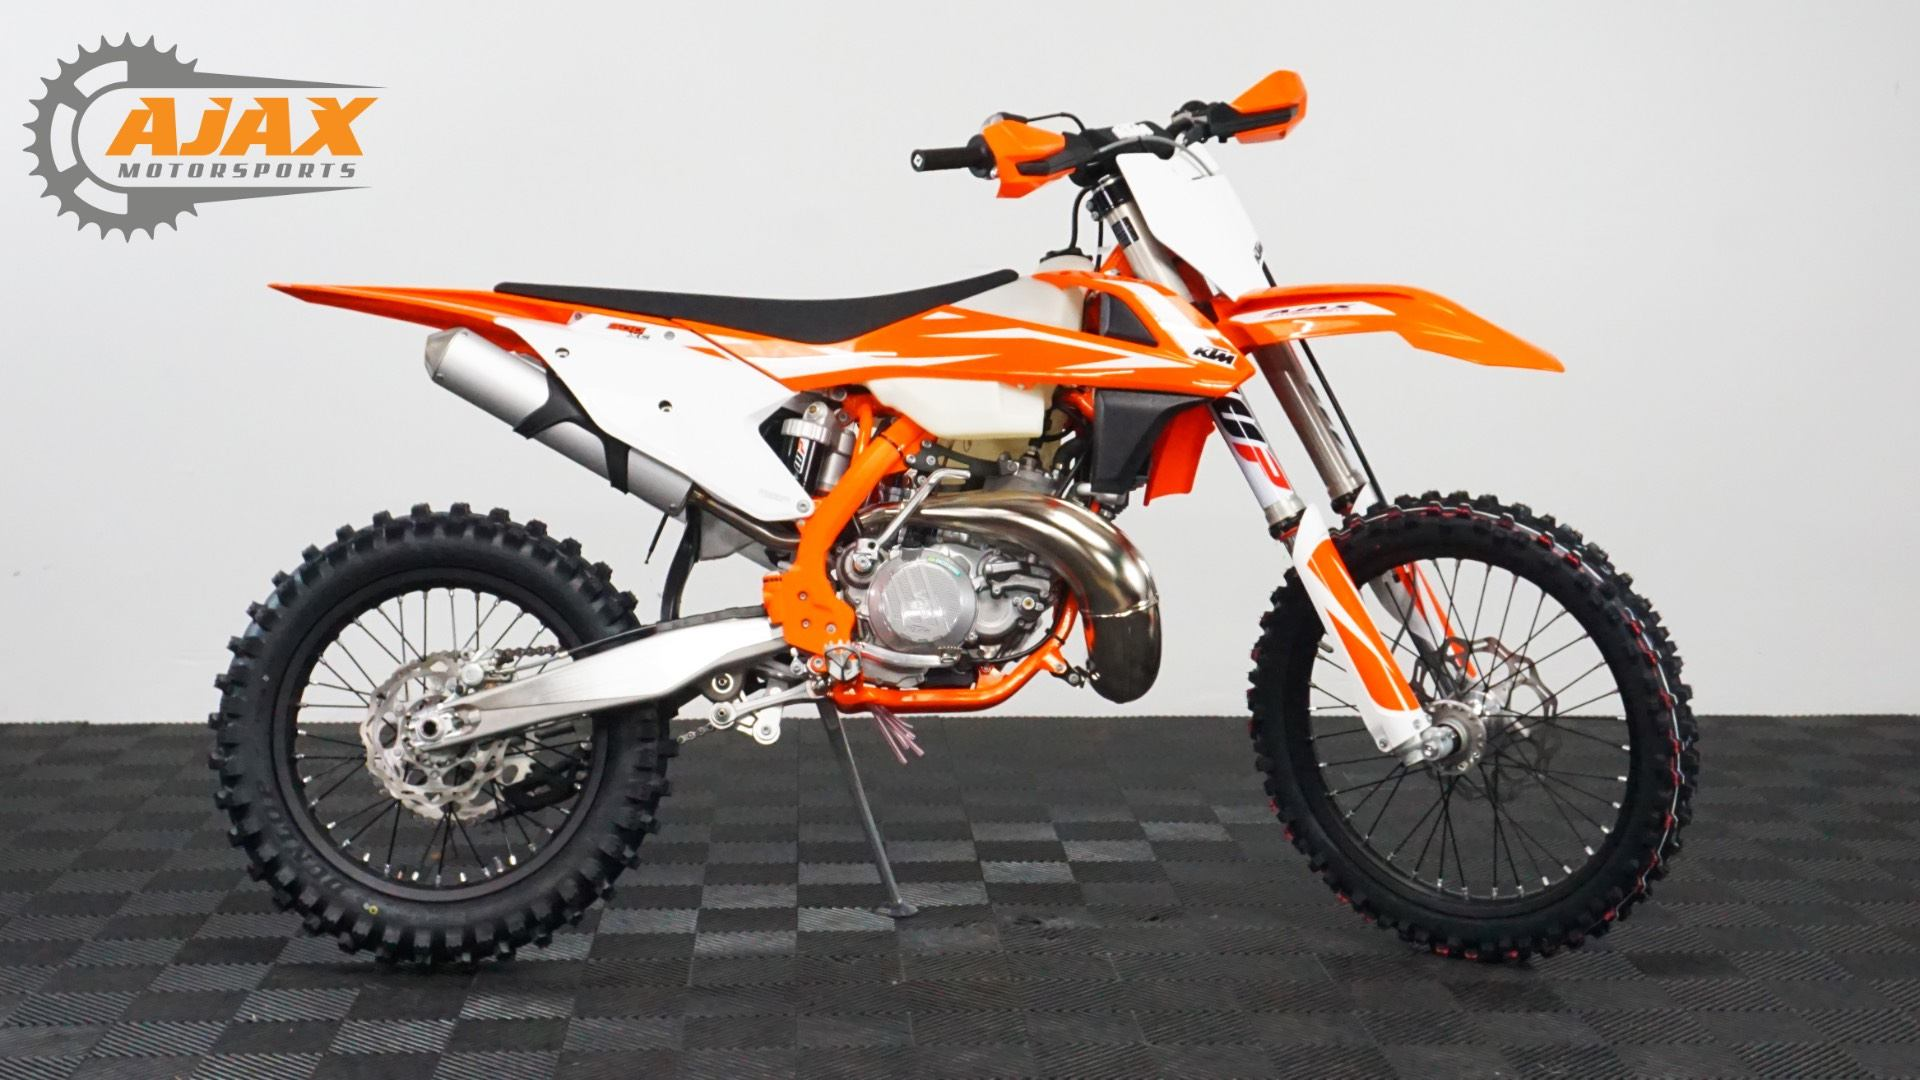 New 2018 ktm 300 xc motorcycles in oklahoma city ok stock number 2018 ktm 300 xc in oklahoma city oklahoma ccuart Image collections